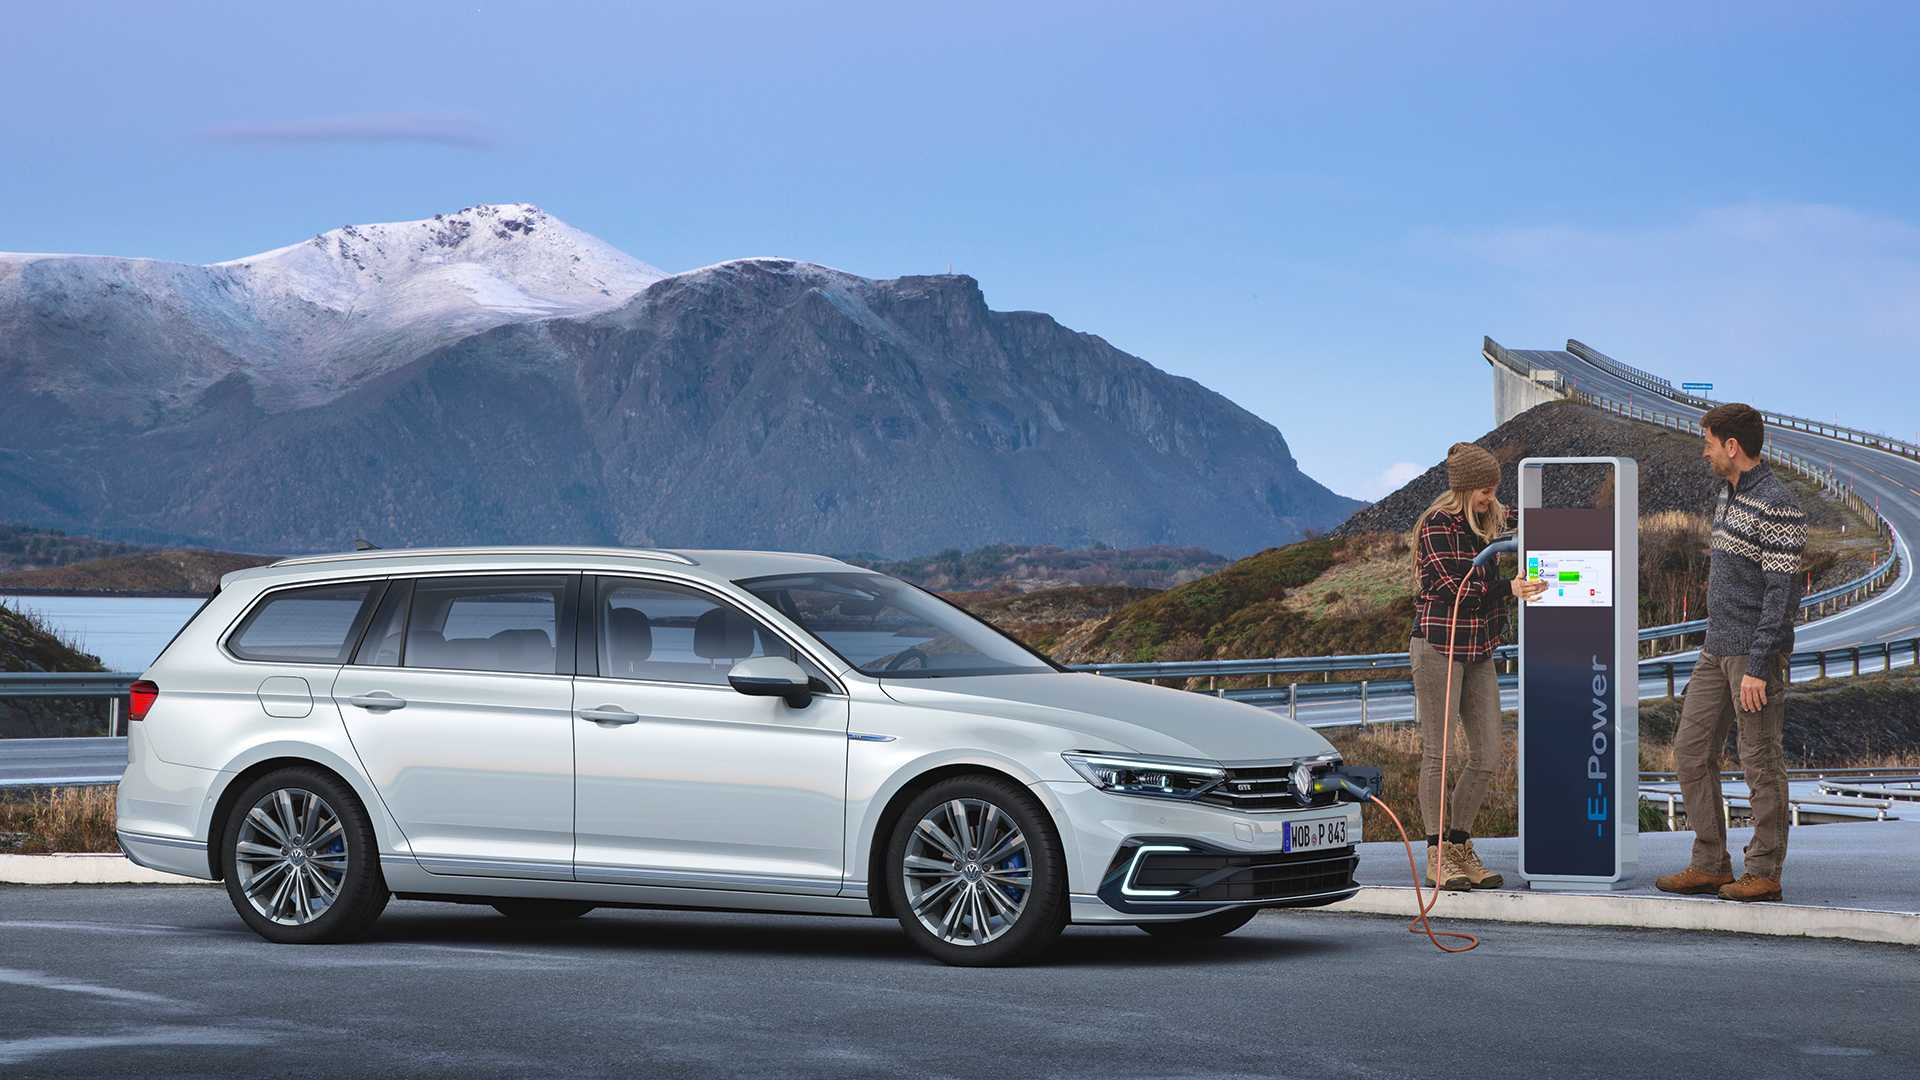 vw-passat-facelift-2019 (33)